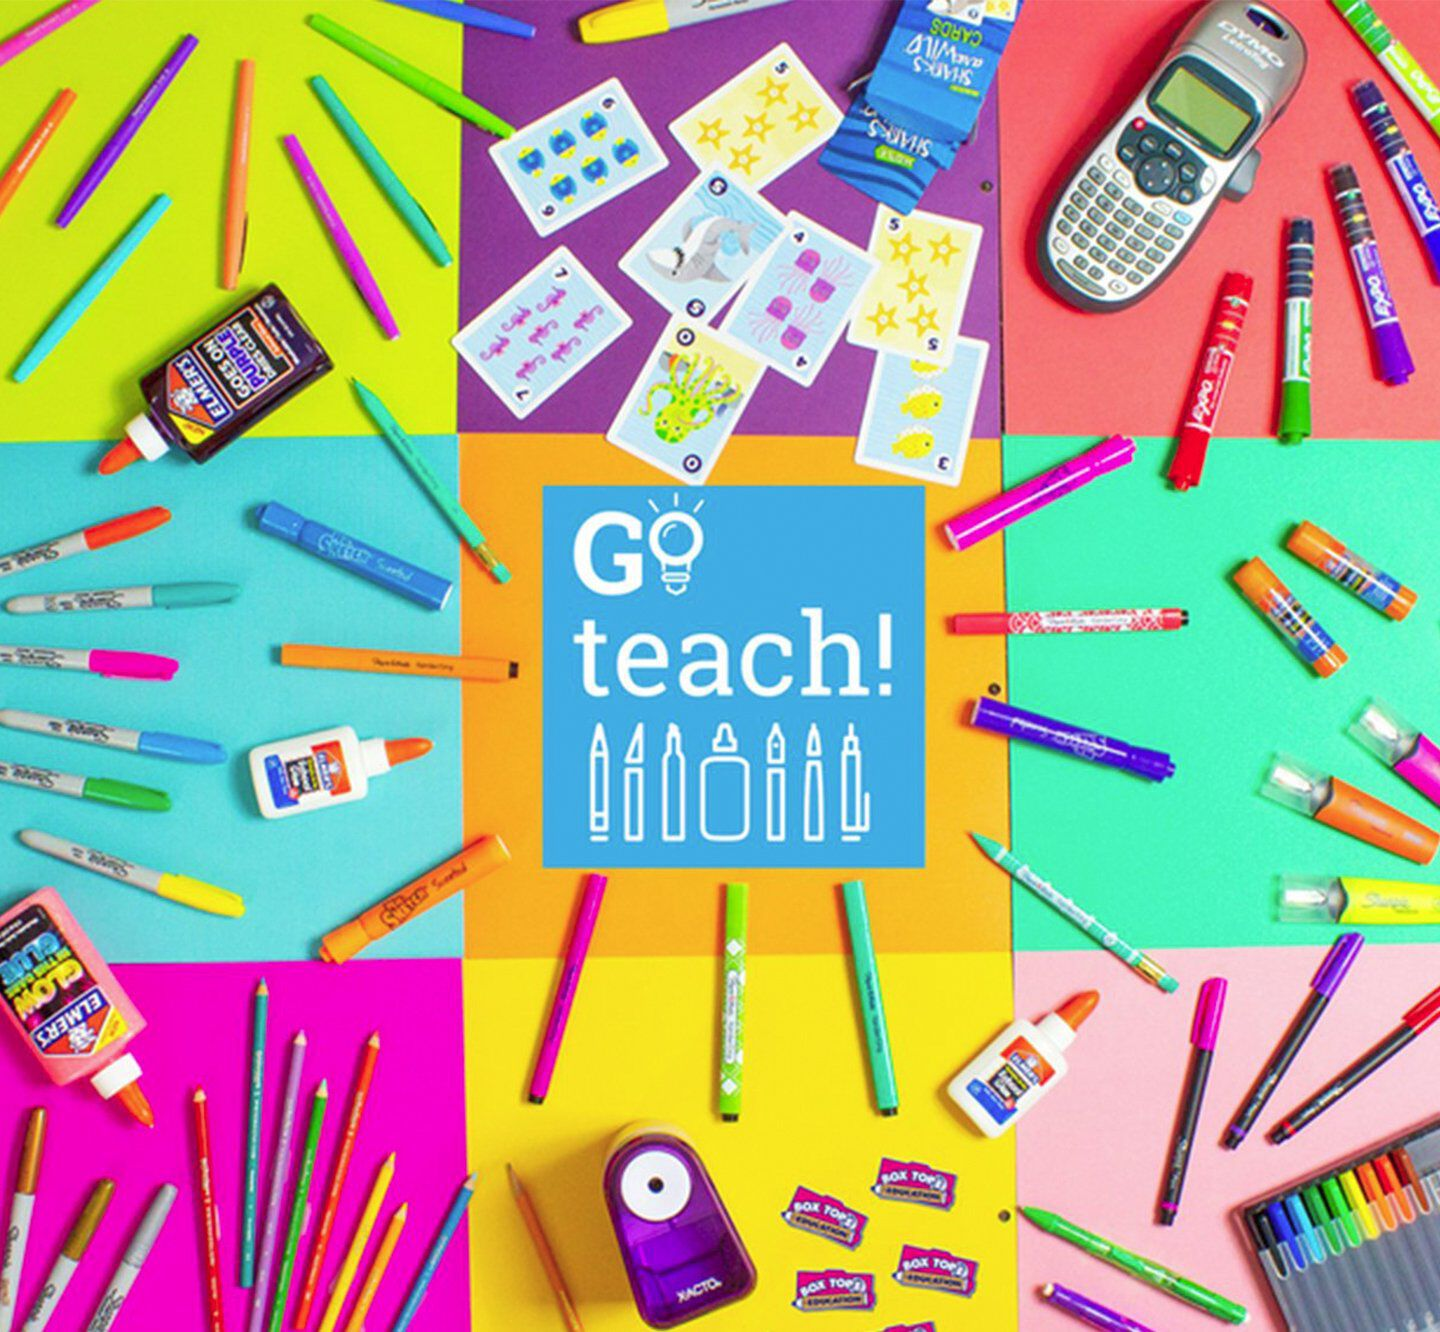 Assorted school supplies with glue, markers, and pencils